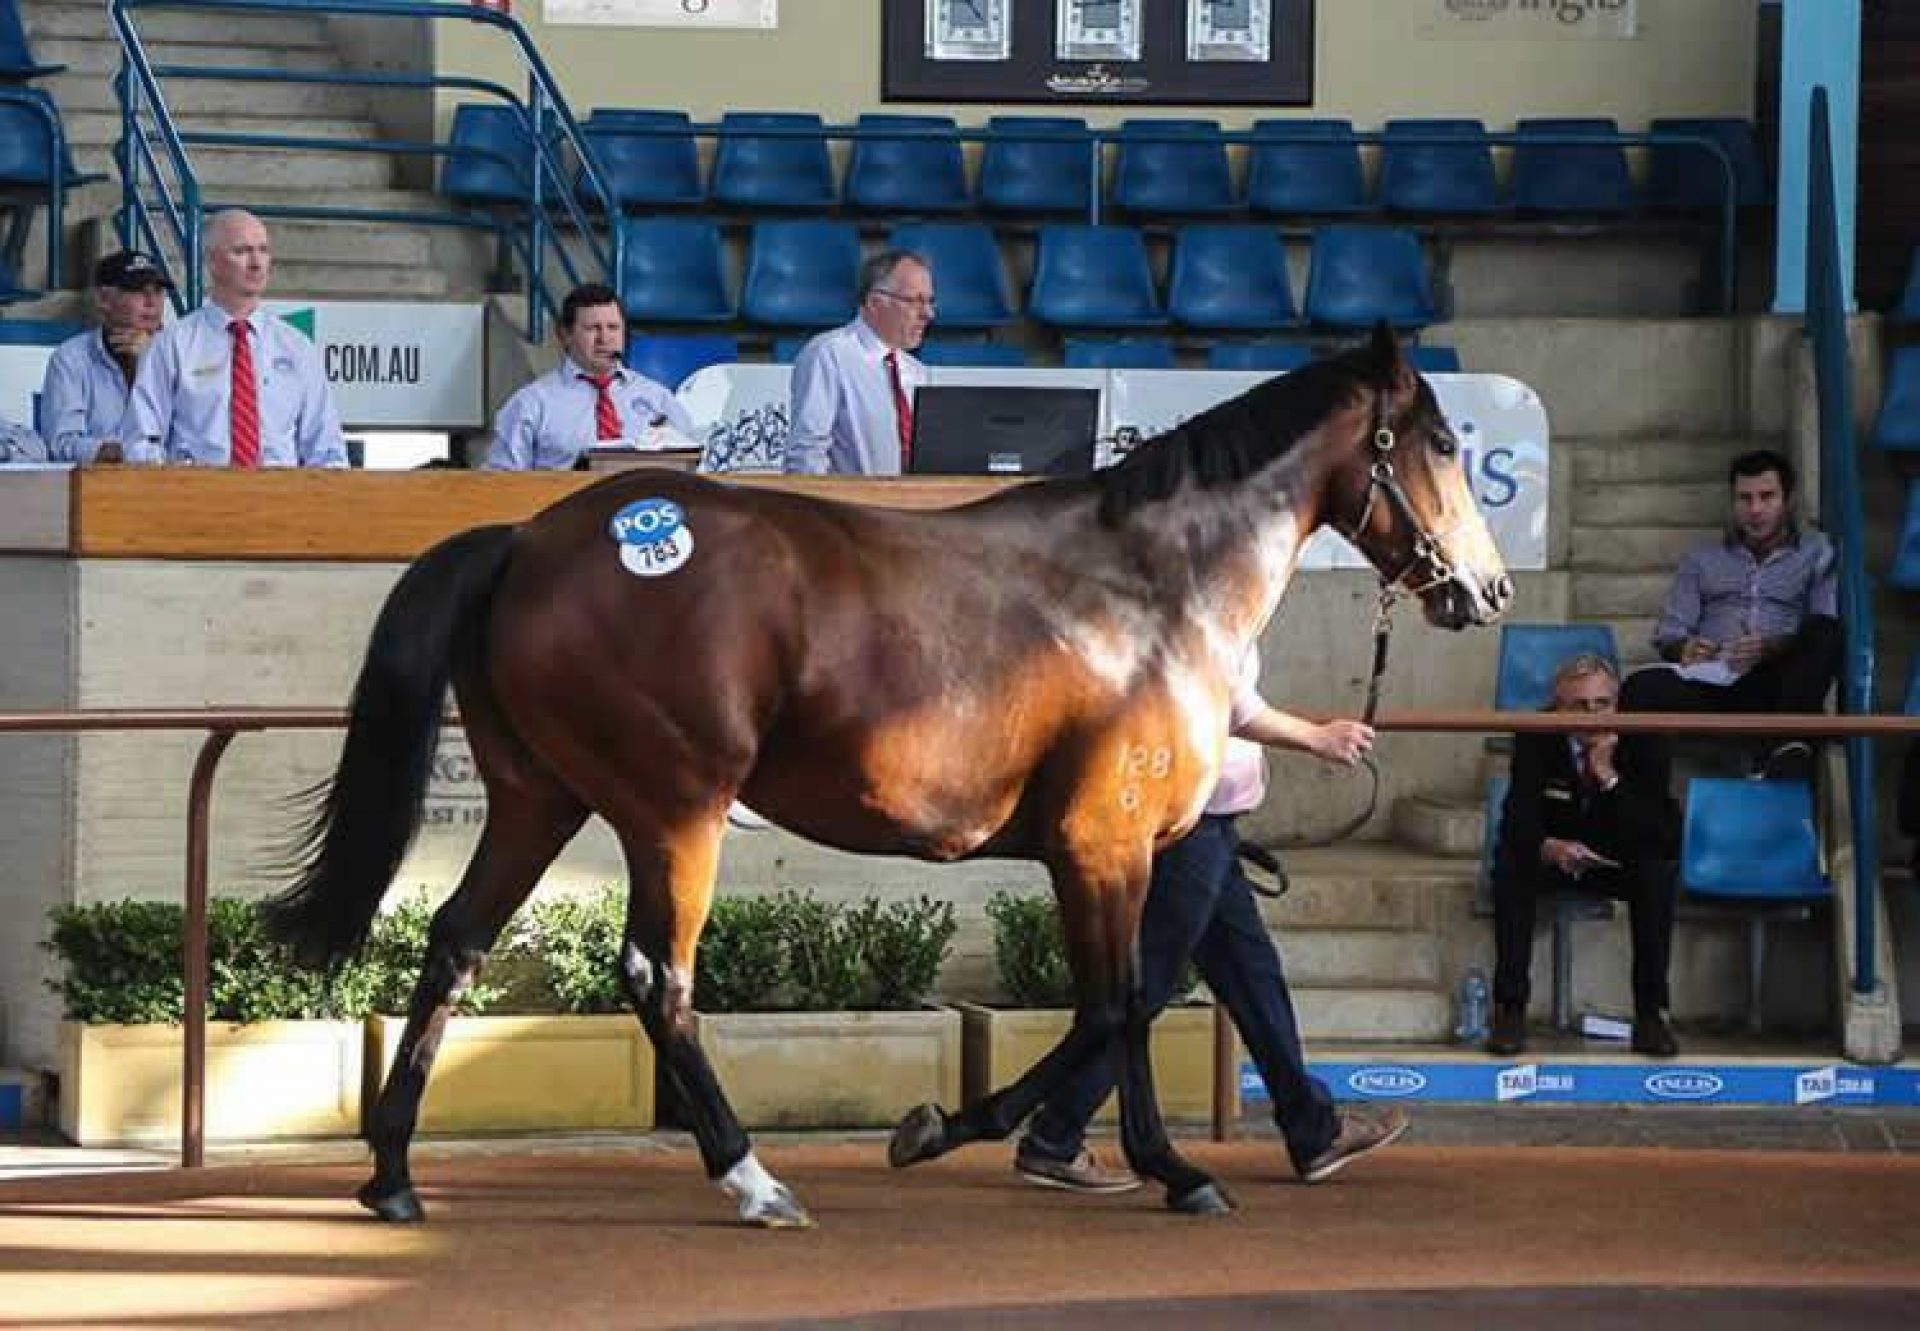 Haiku selling for $580,000at Inglis, set to be covered by Vancouver